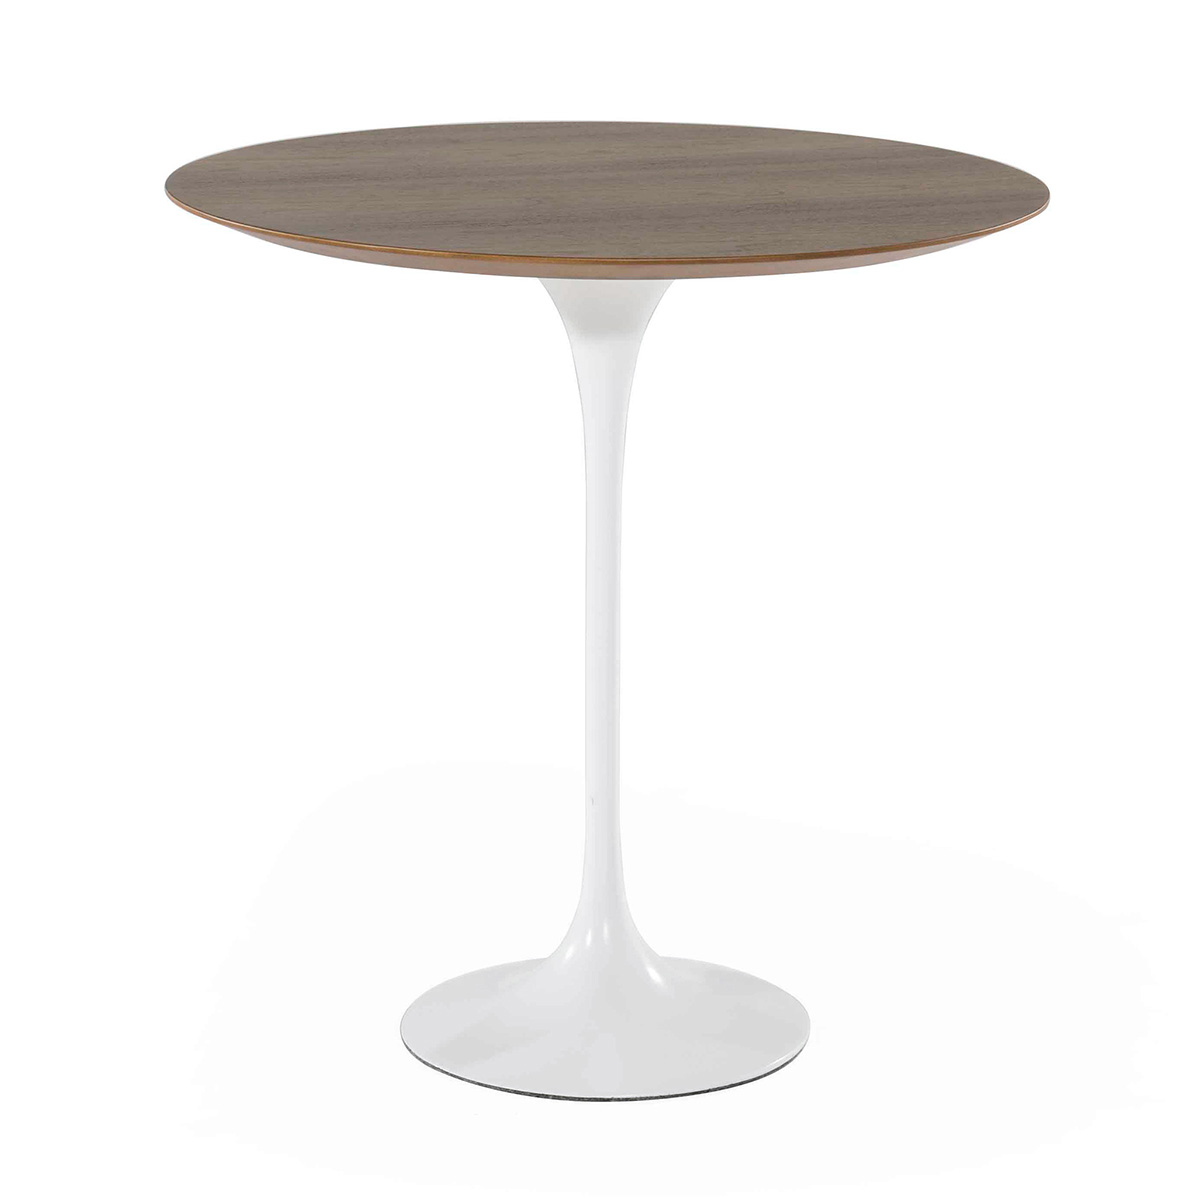 saarinen tulip side table yhst mawr metal accent circular cotton tablecloths target clocks outdoor sectional cover magnussen allure end timber legs fire pit set white marble